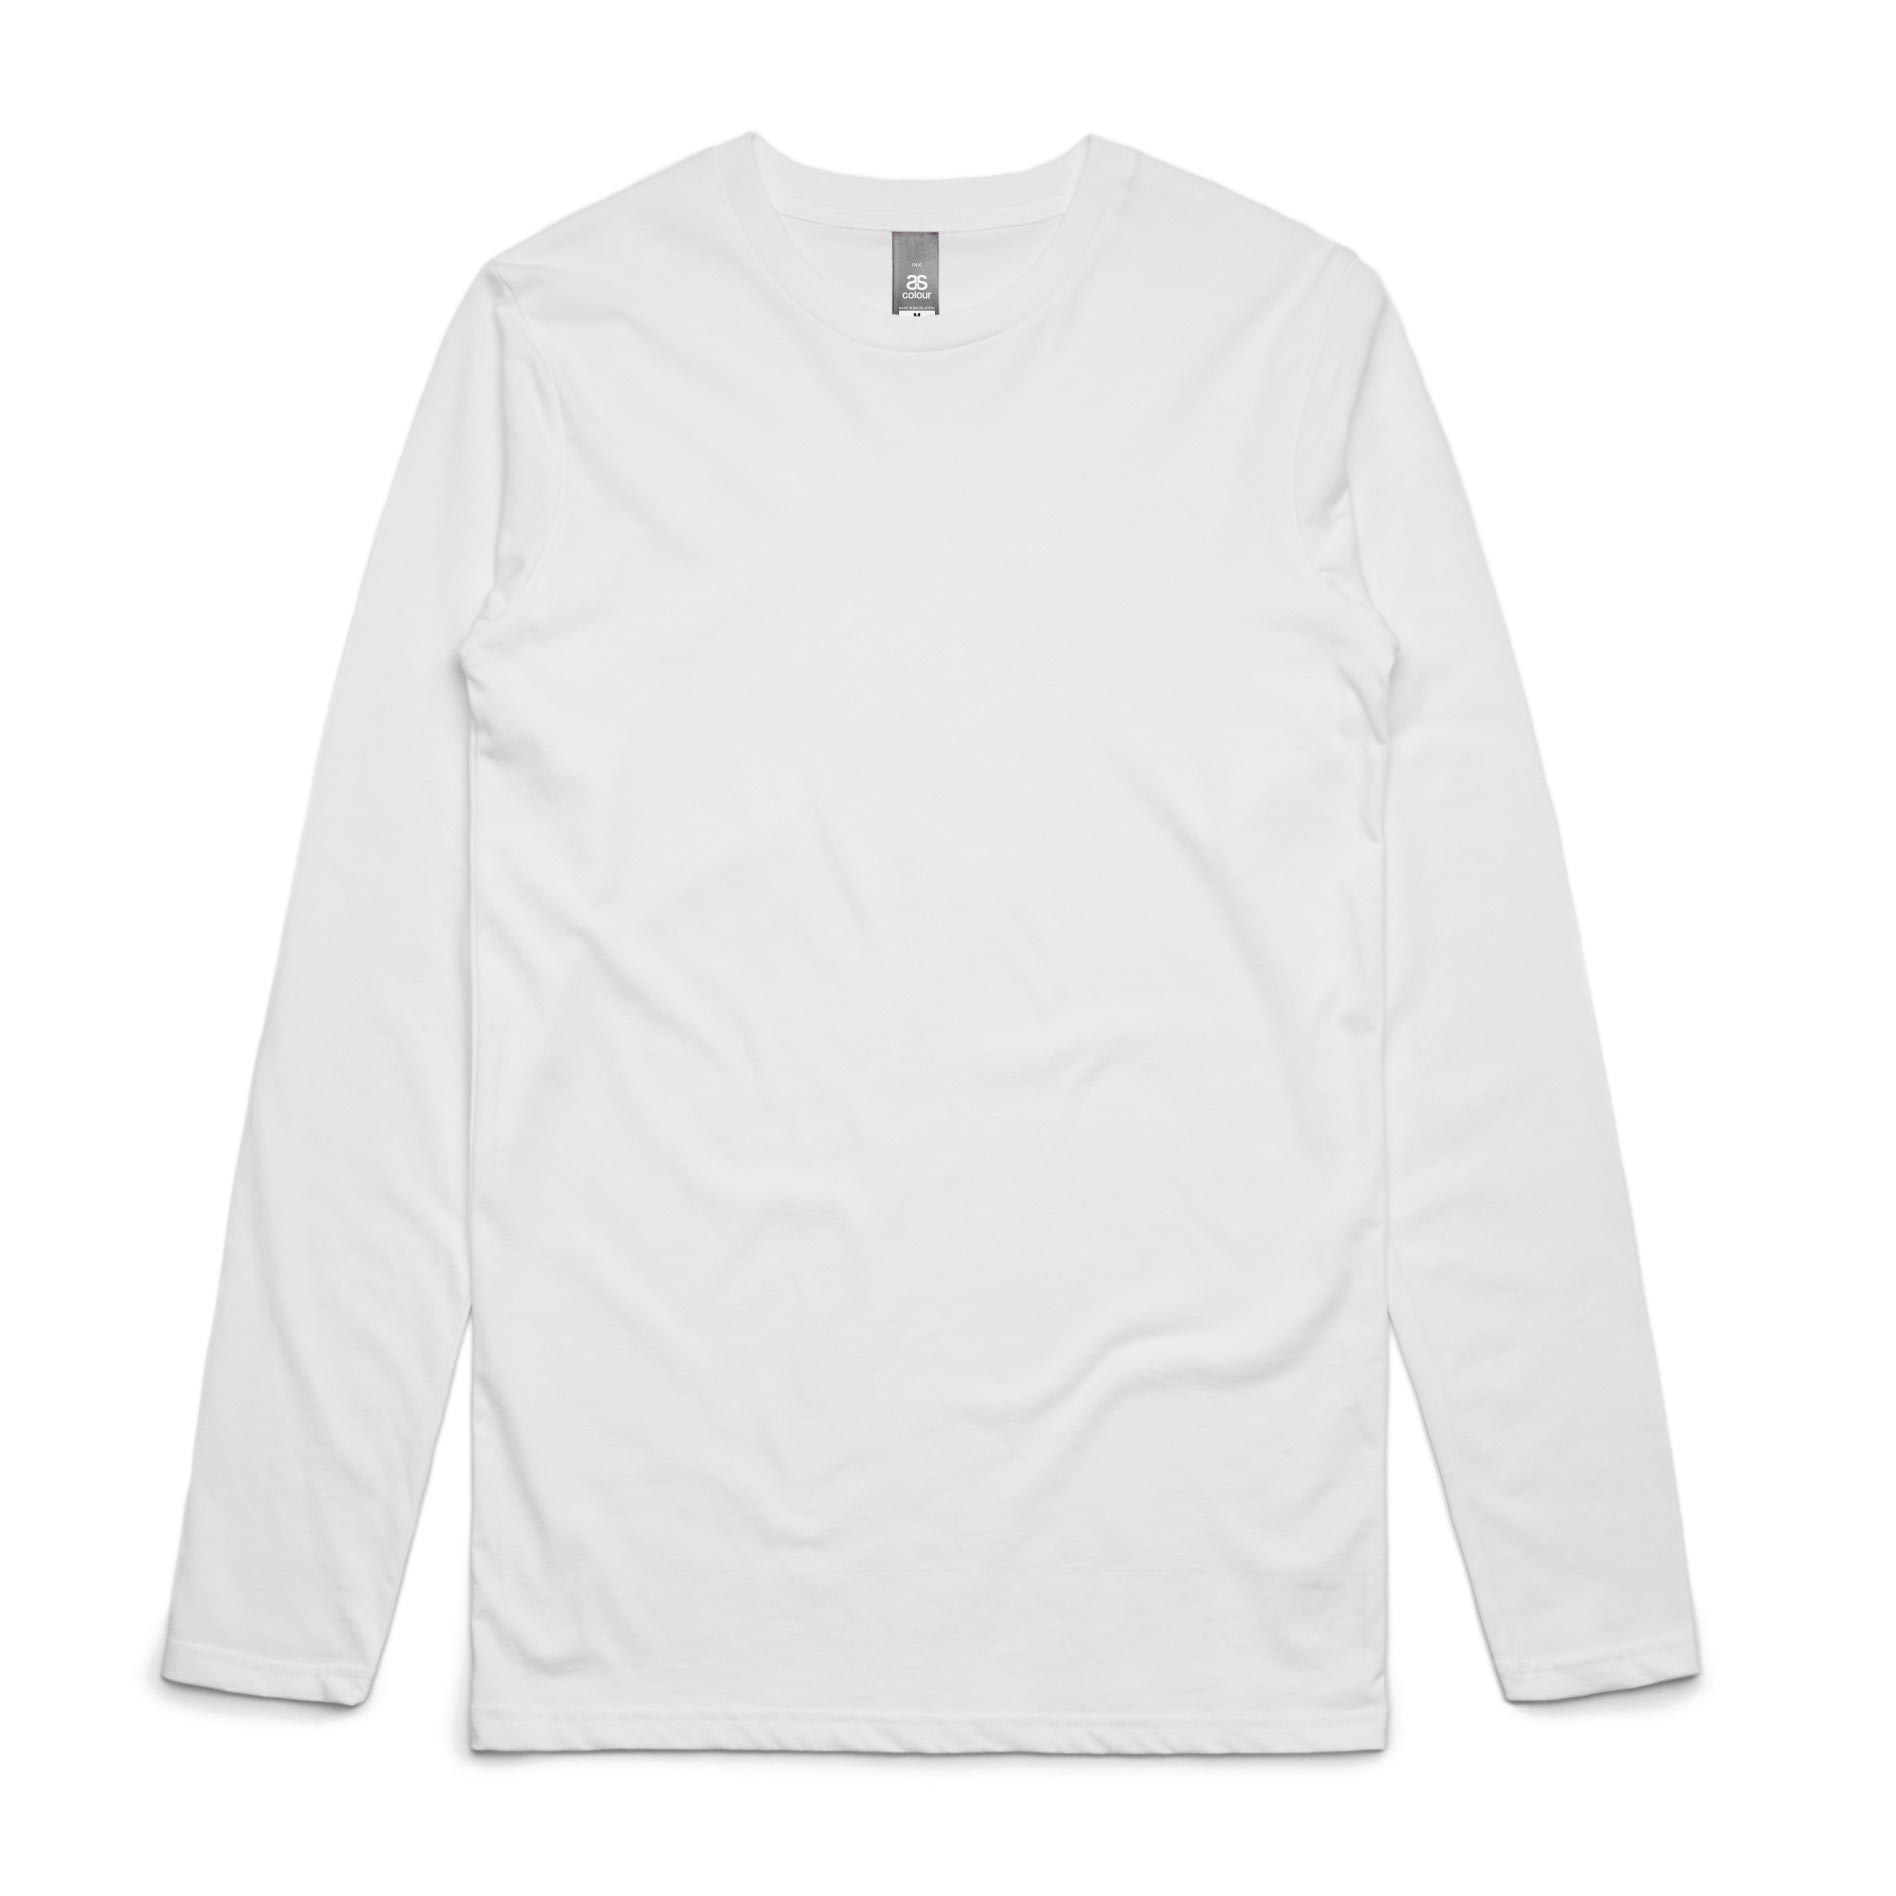 6adc52a5 Custom Printed AS Colour Ink Longsleeve T-Shirts - Awesome Merchandise